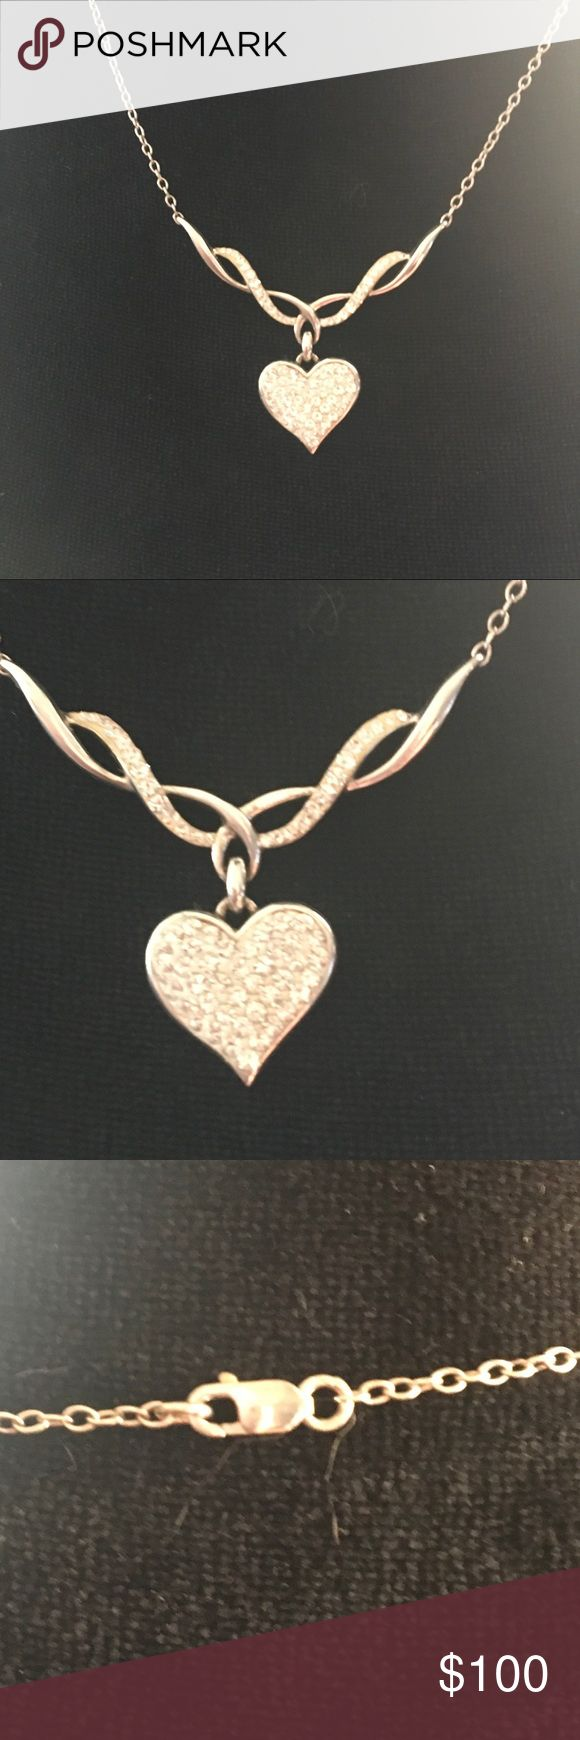 Gorgeous silver and CZ heart necklace Gorgeous silver and CZ heart necklace.  Marked .925 AU.  Lobster clasp.  So super glittery in the sunlight.  Pictures do not do this justice.  Paid over $120. Super deal! #diamonds#simulated#wedding#goldlike#shiny#glamor#glamour#present#gift#hearts#beautiful#betsey#suncatcher Vintage Jewelry Necklaces